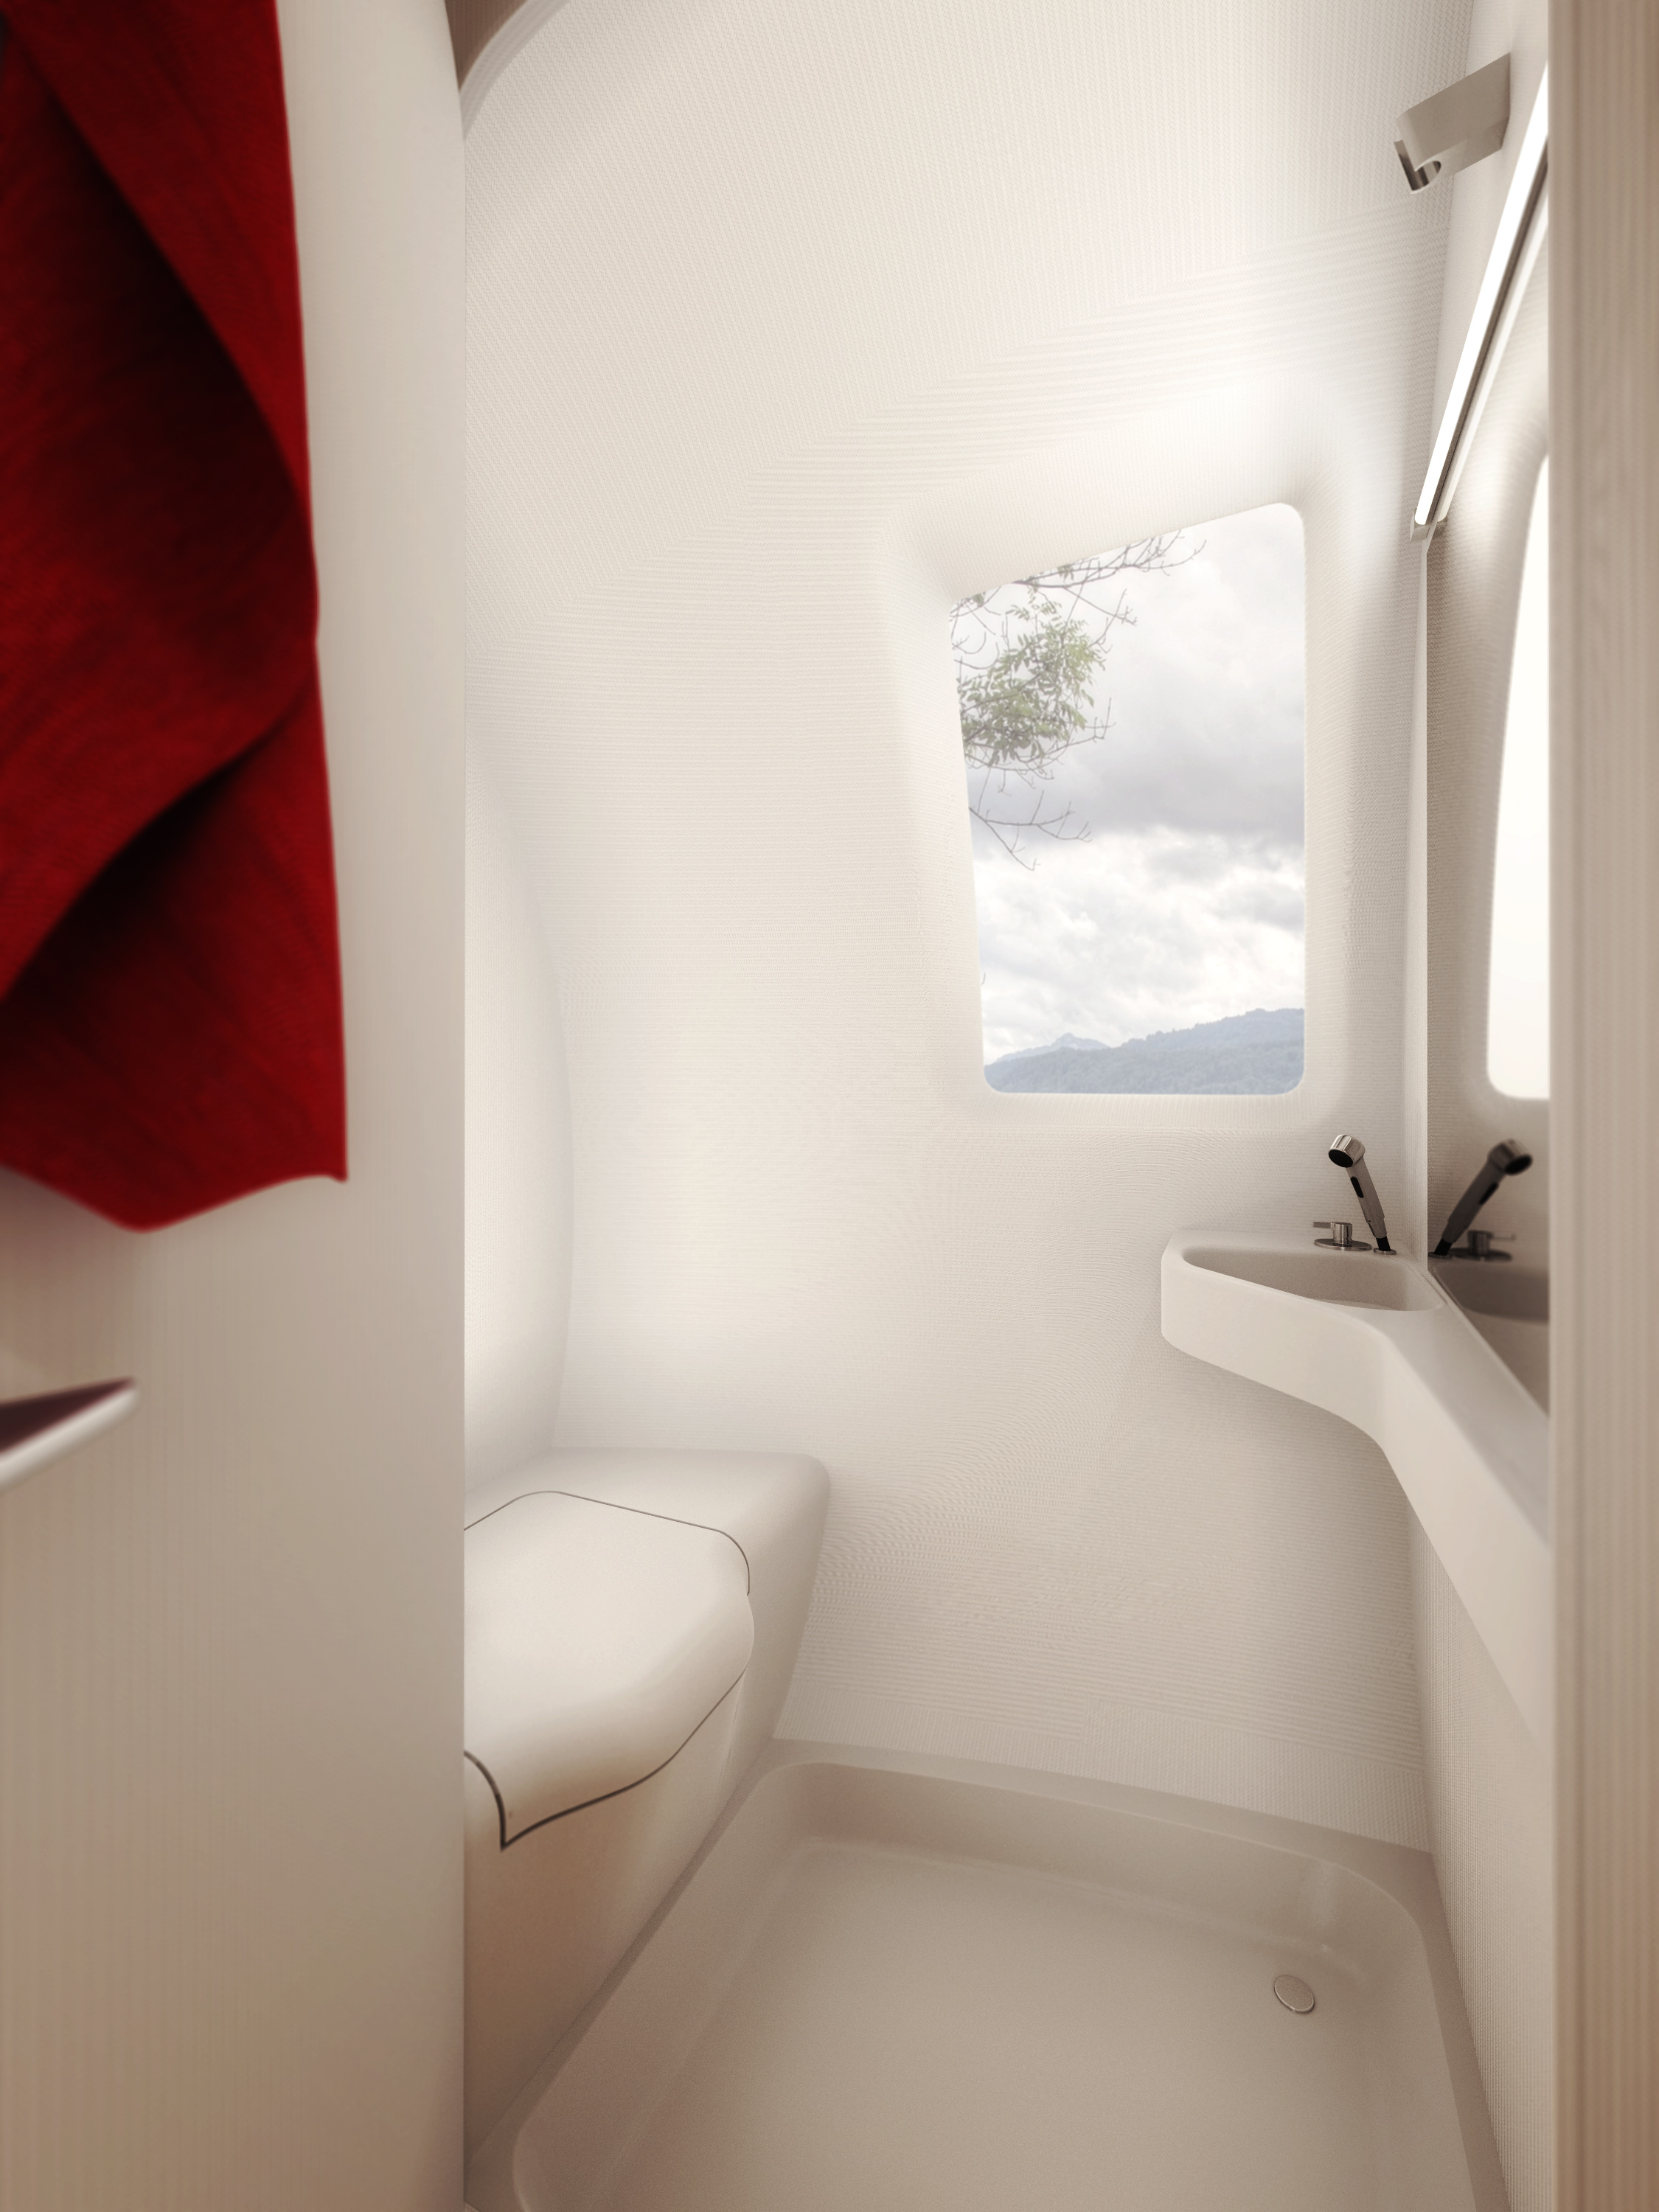 The Ecocapsule's bathroom has a shower, sink, window, mirror, and composting toilet.